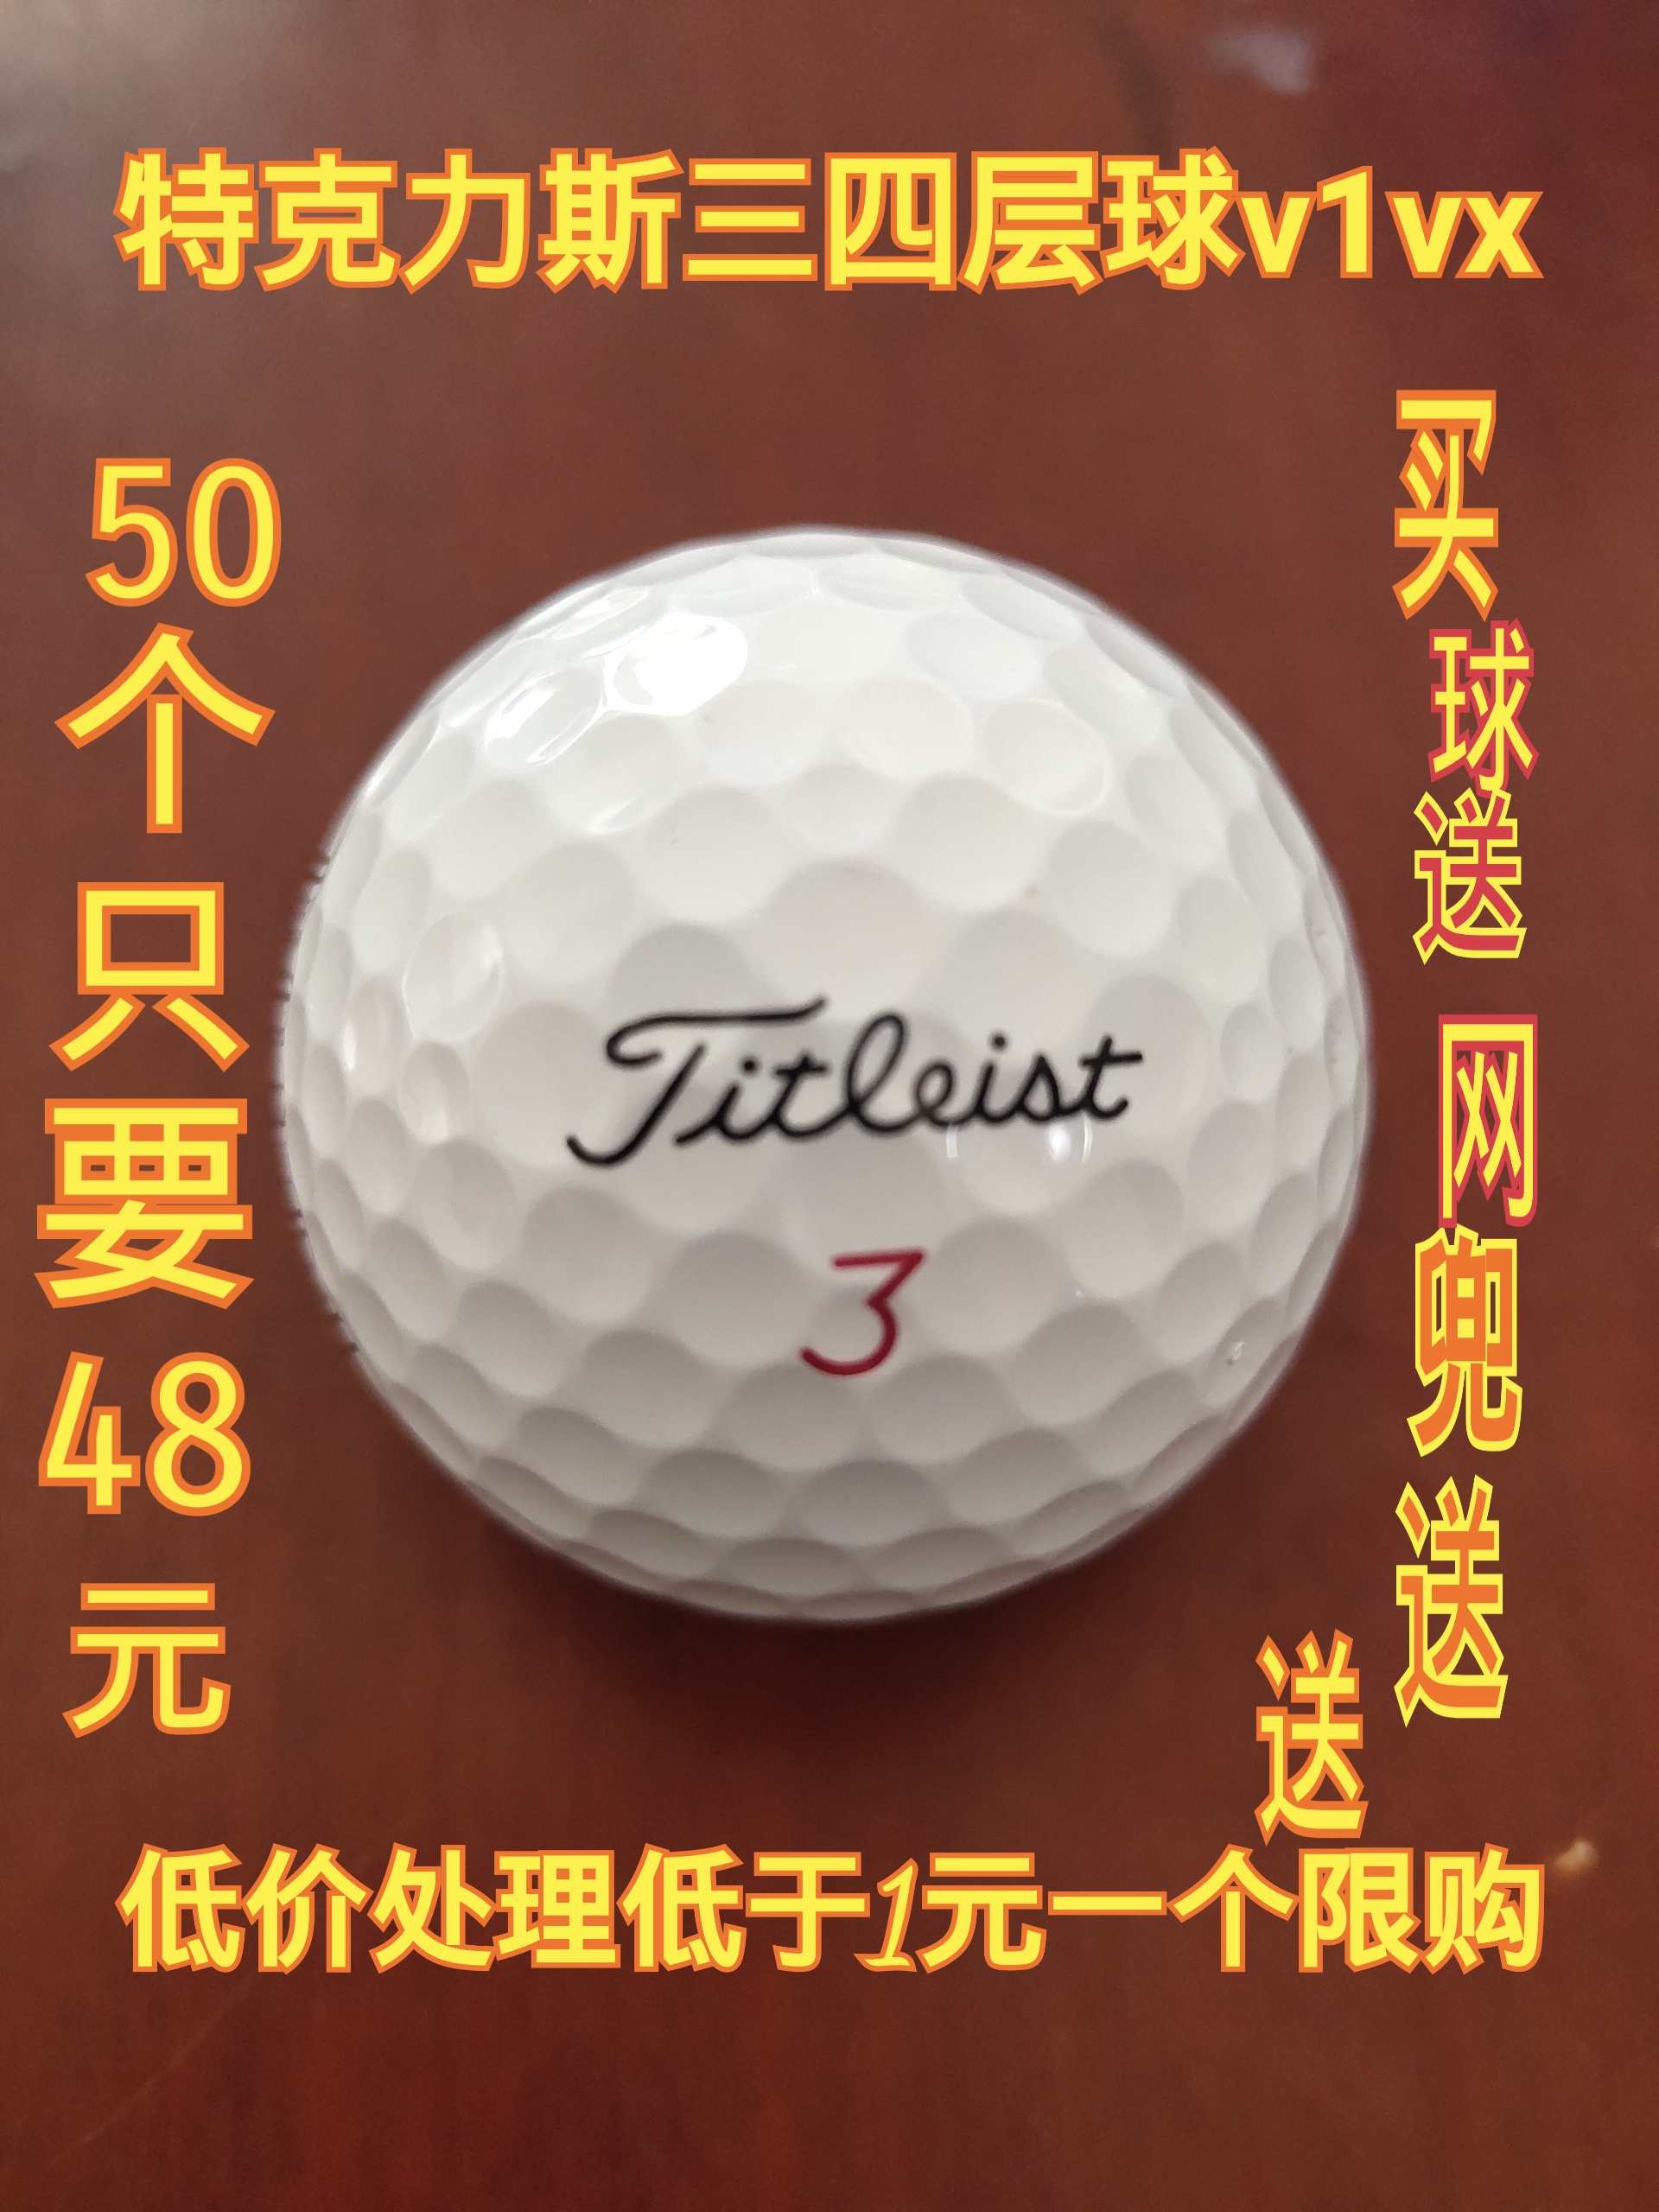 Golf Title ist prov1x special ball white package for next match